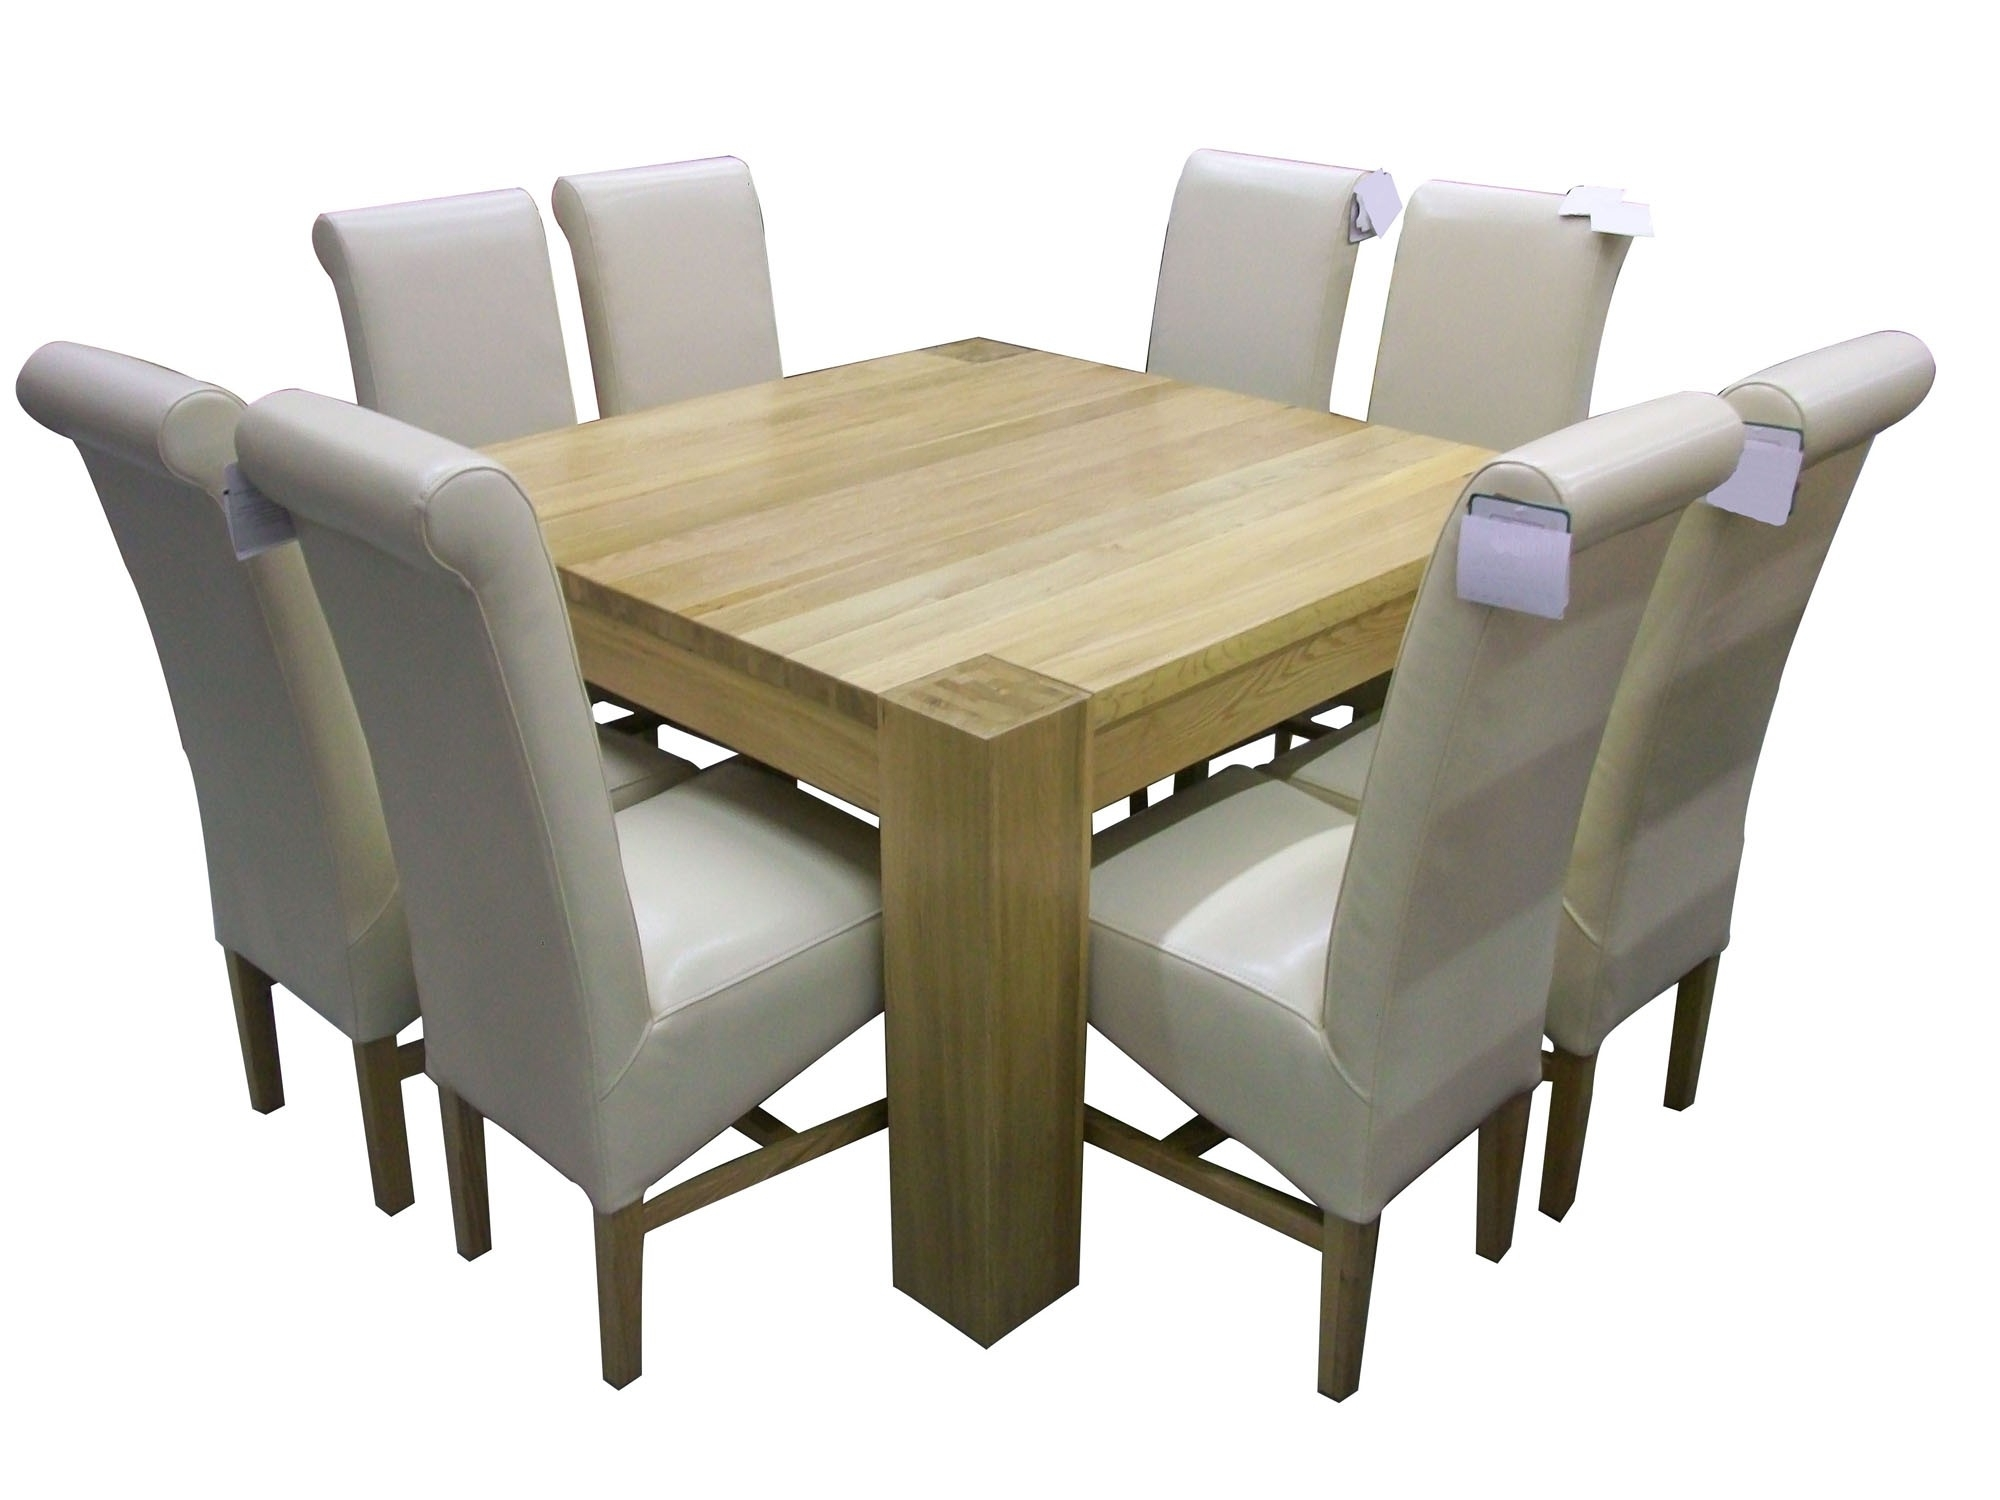 White Dining Tables 8 Seater With Regard To Most Up To Date Awesome 8 Seater Dining Table Bathroom Accessories Charming At  (View 20 of 25)